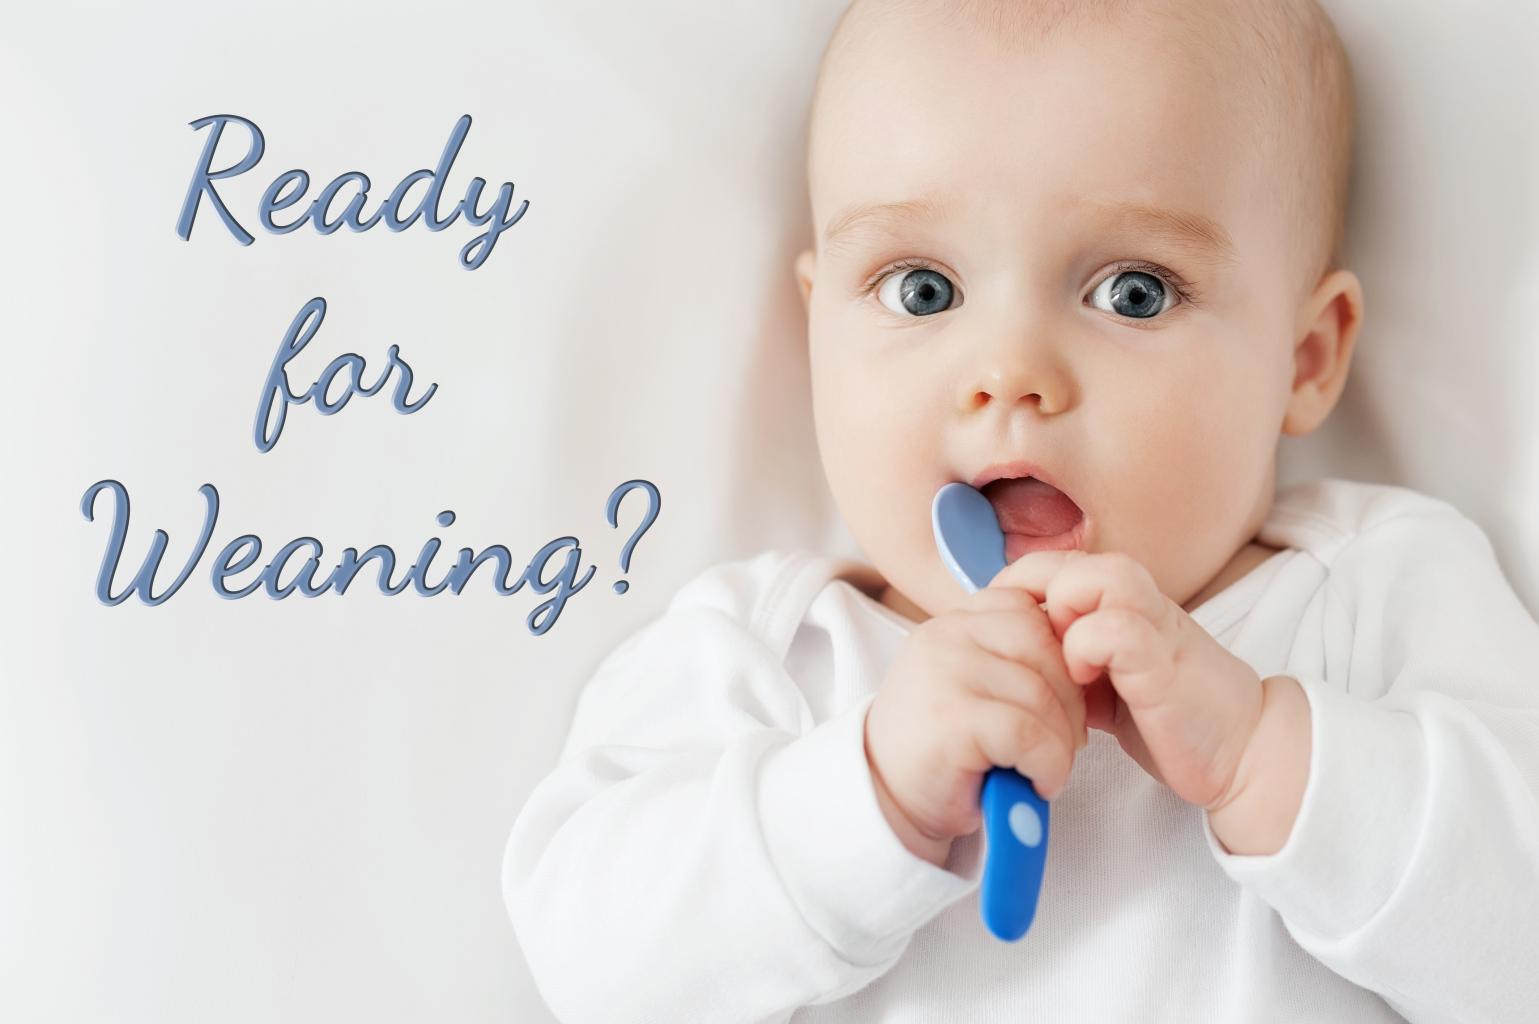 WEANING AT SIX MONTHS